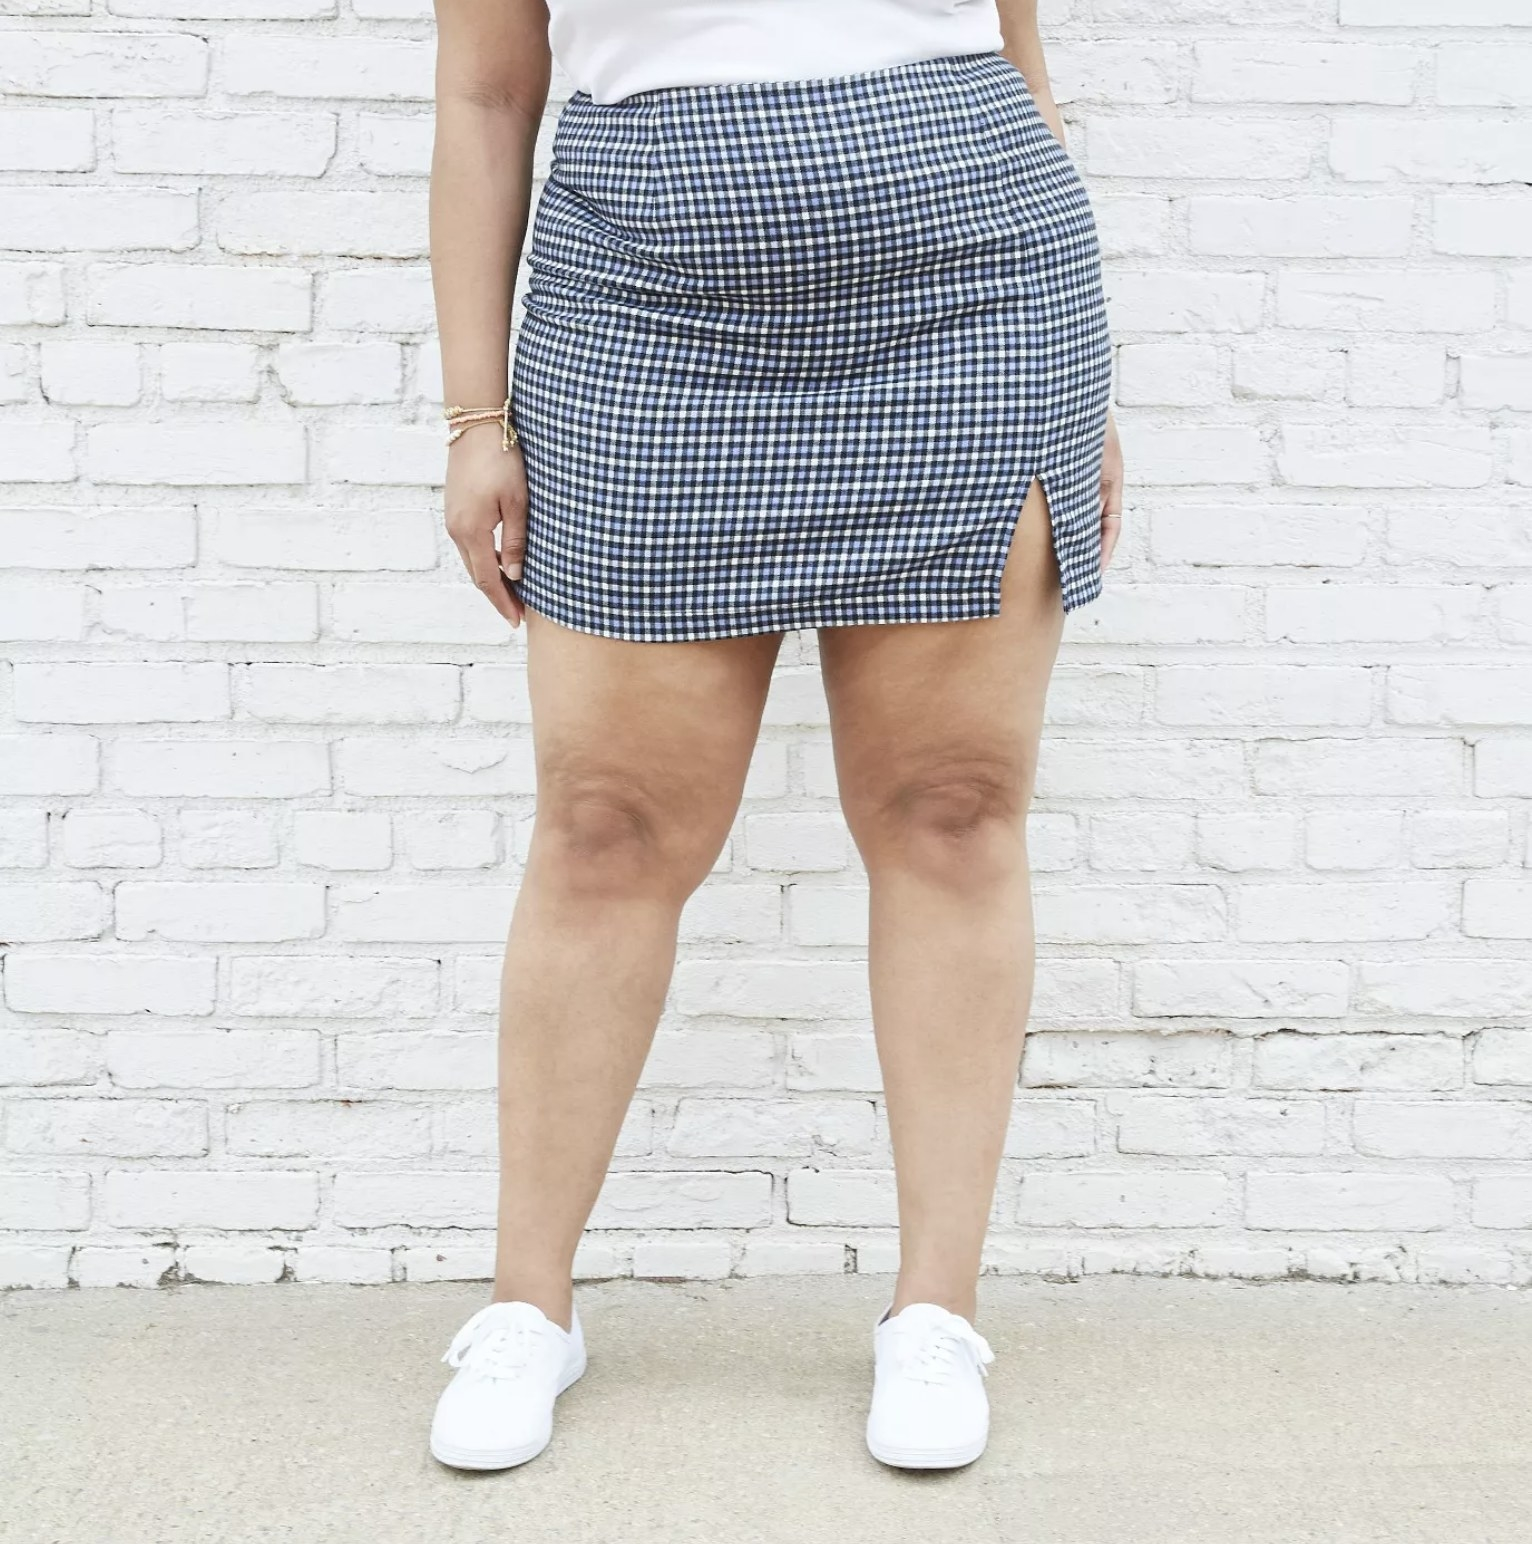 model wearing blue and white plaid mini skirt